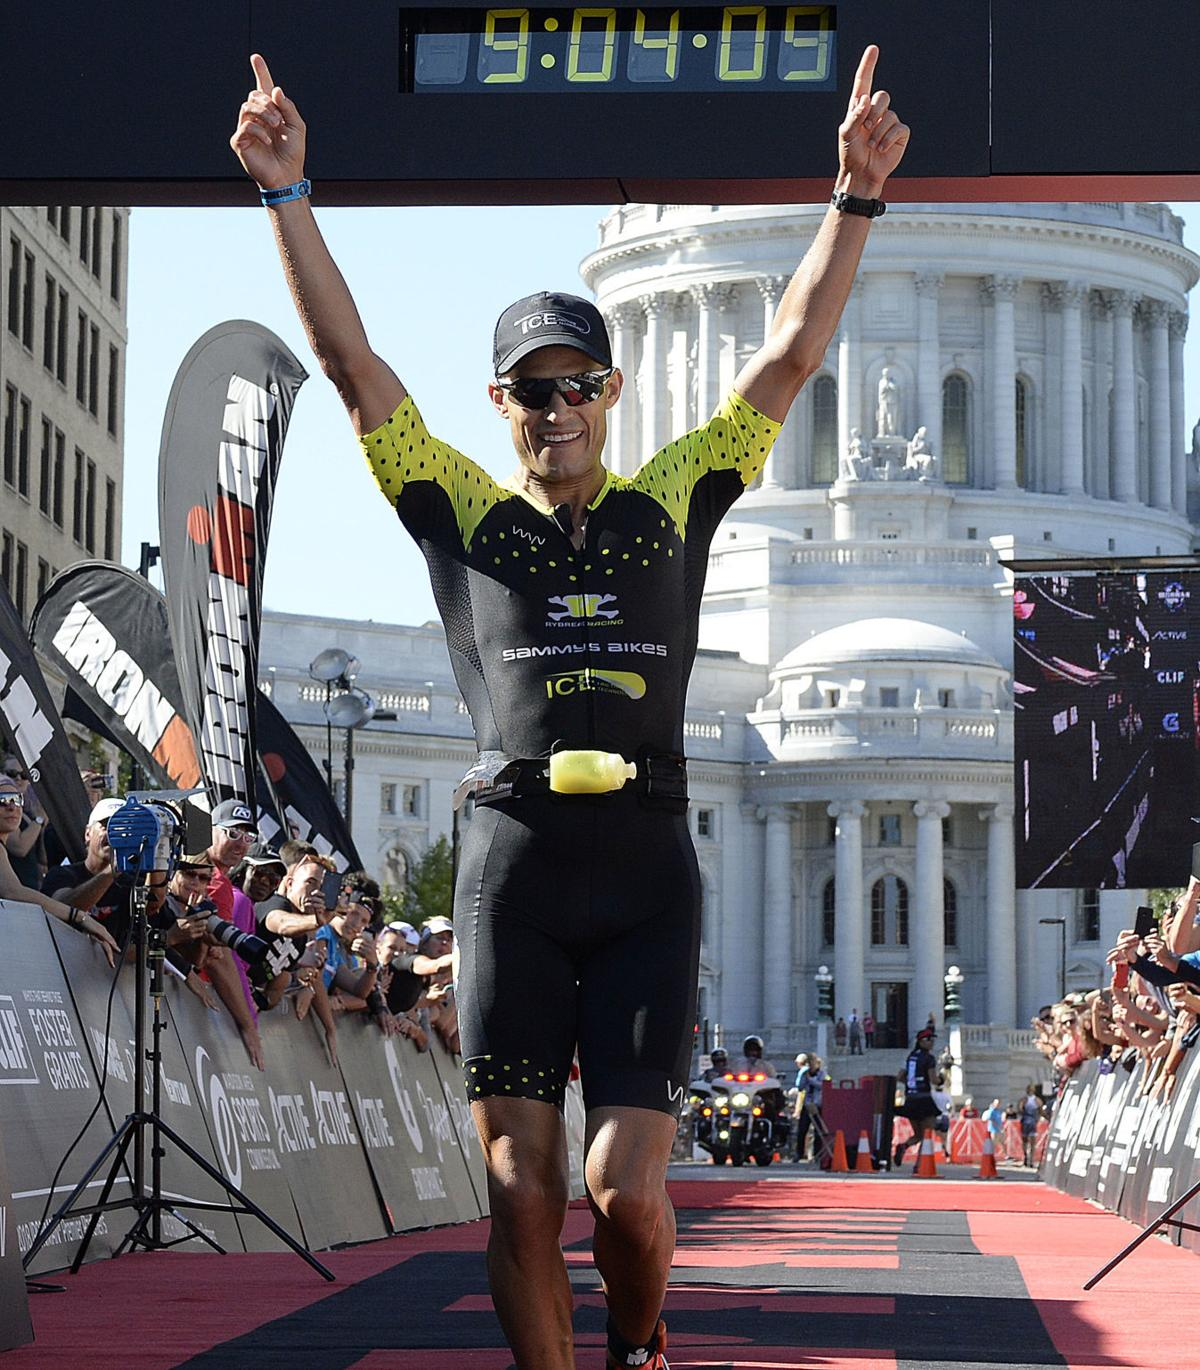 Madison Native And Uw Grad Who Was >> Madison Native Finishes Fourth In Ironman Ex Illinois Track Athlete